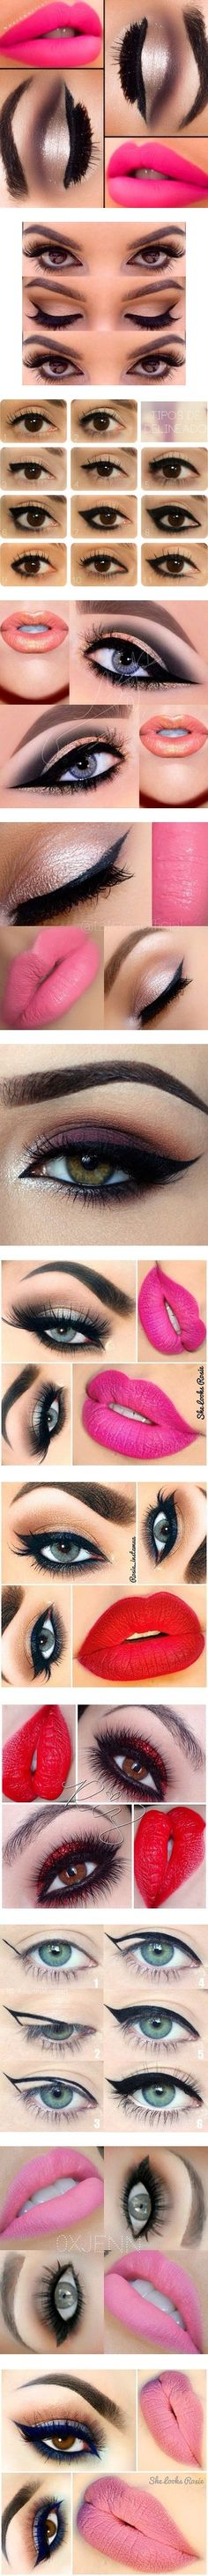 Eyes and Lips by lemonade0007 on Polyvore featuring beauty products, makeup, eyes, lips, beauty, lip makeup, lip gloss makeup, eye makeup, eyeliner and ardell cosmetics